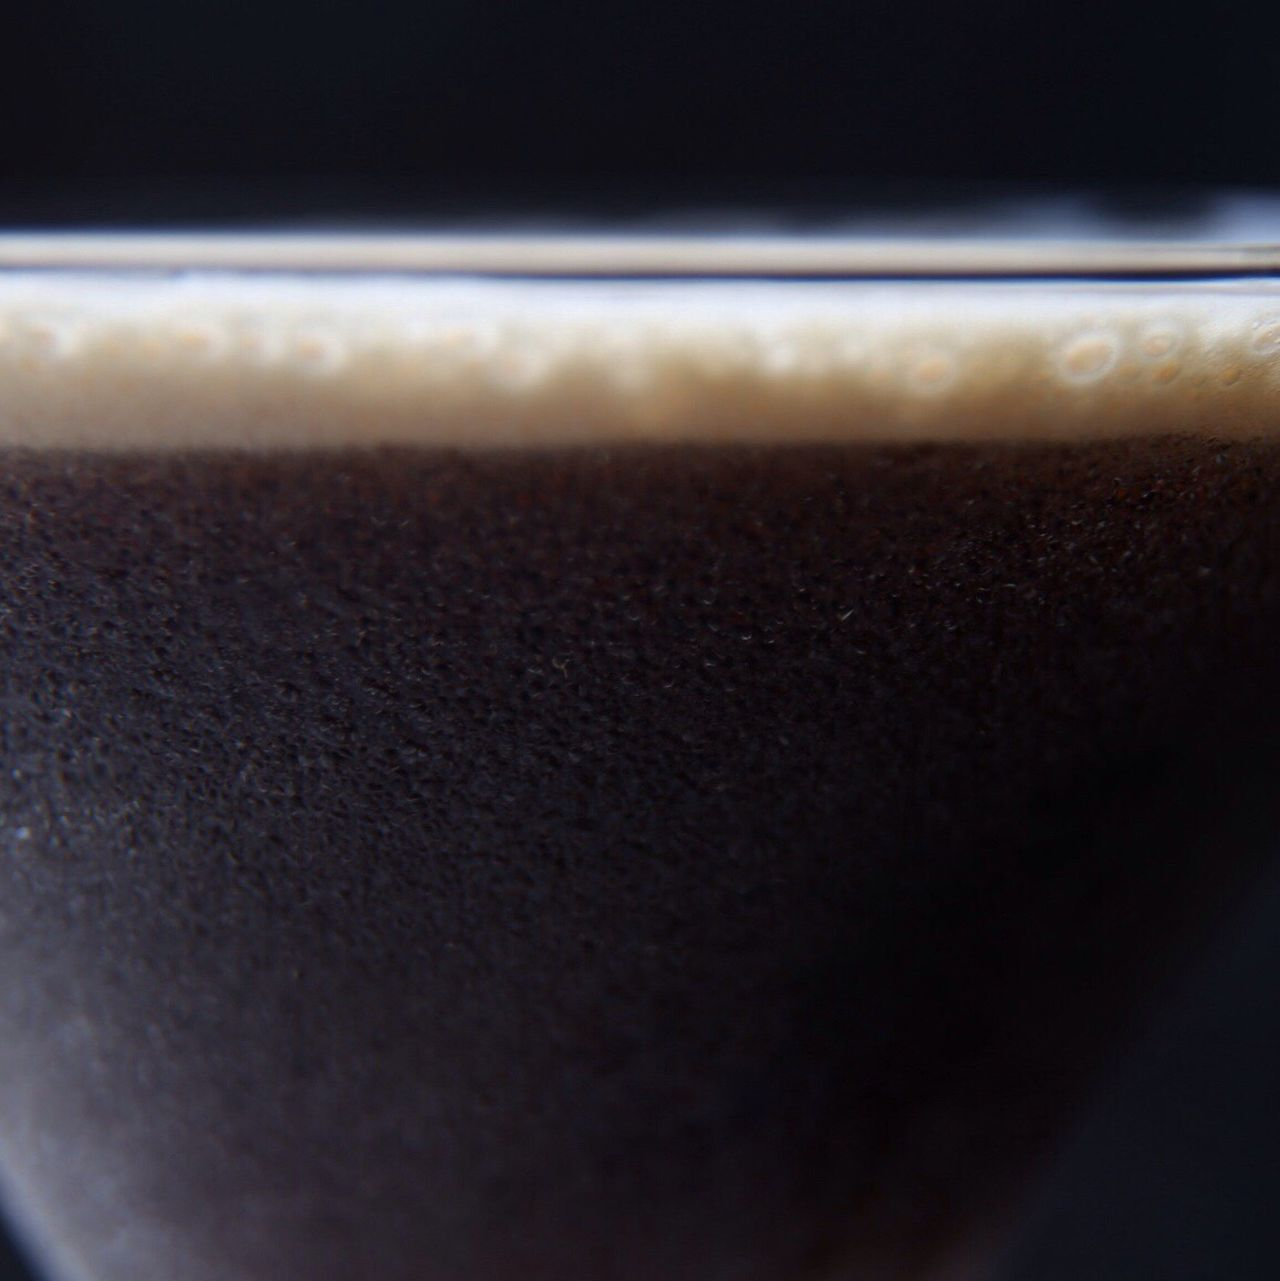 Close-up No People Food And Drink Refreshment Drink Indoors  Day Espresso Martini Coffee Cocktails Ice Coffee Bean